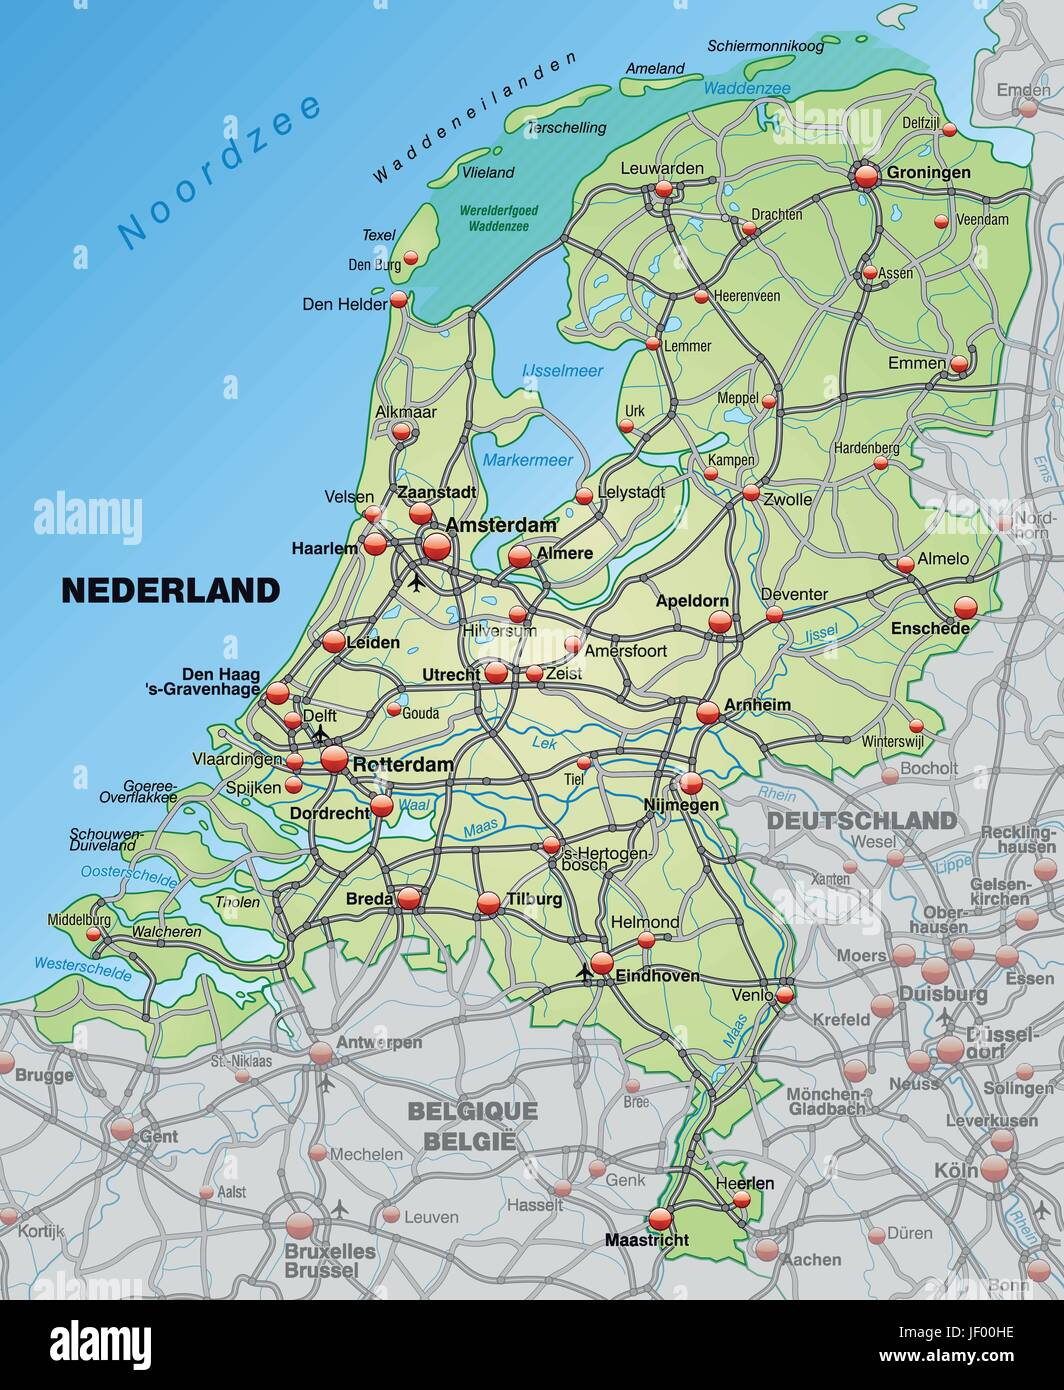 Holland Grenze Nrw